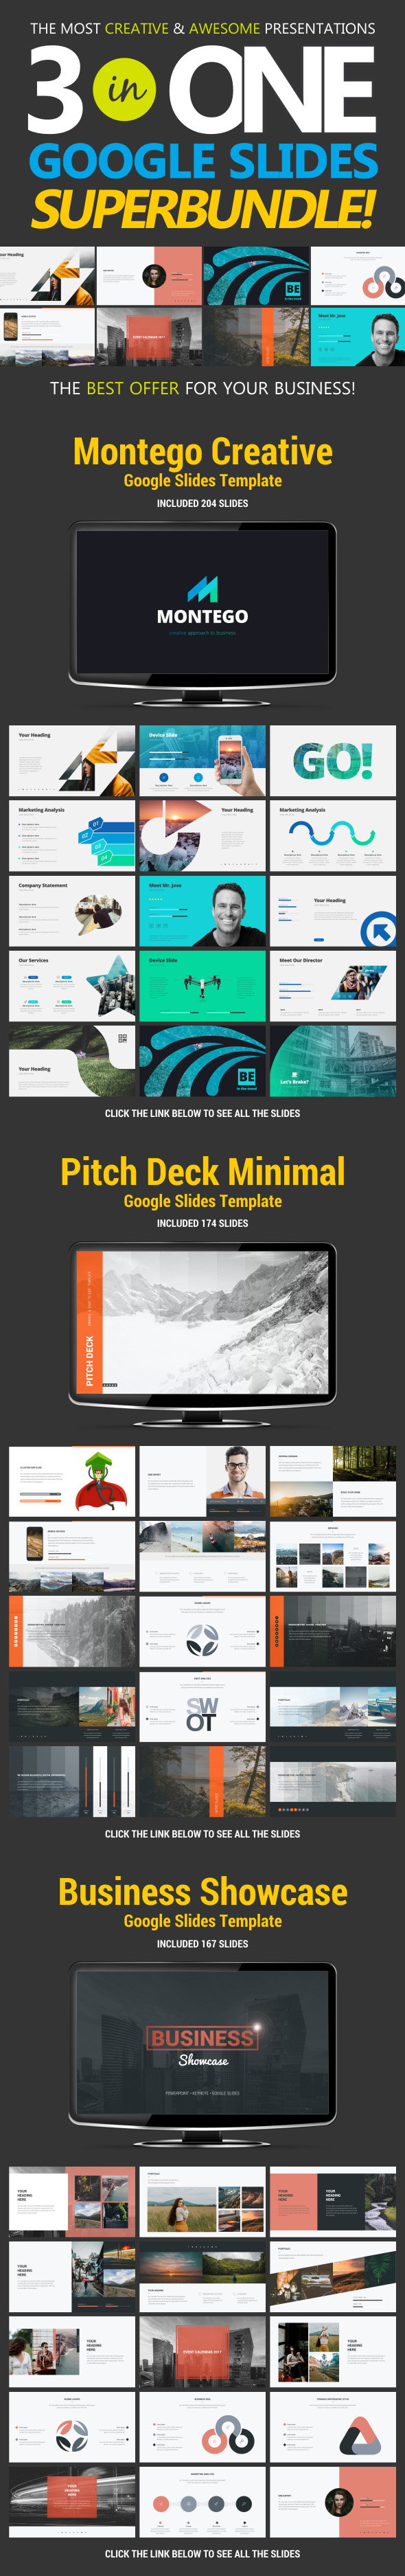 Business Bundle vol.2 - Google Slides Presentation Templates